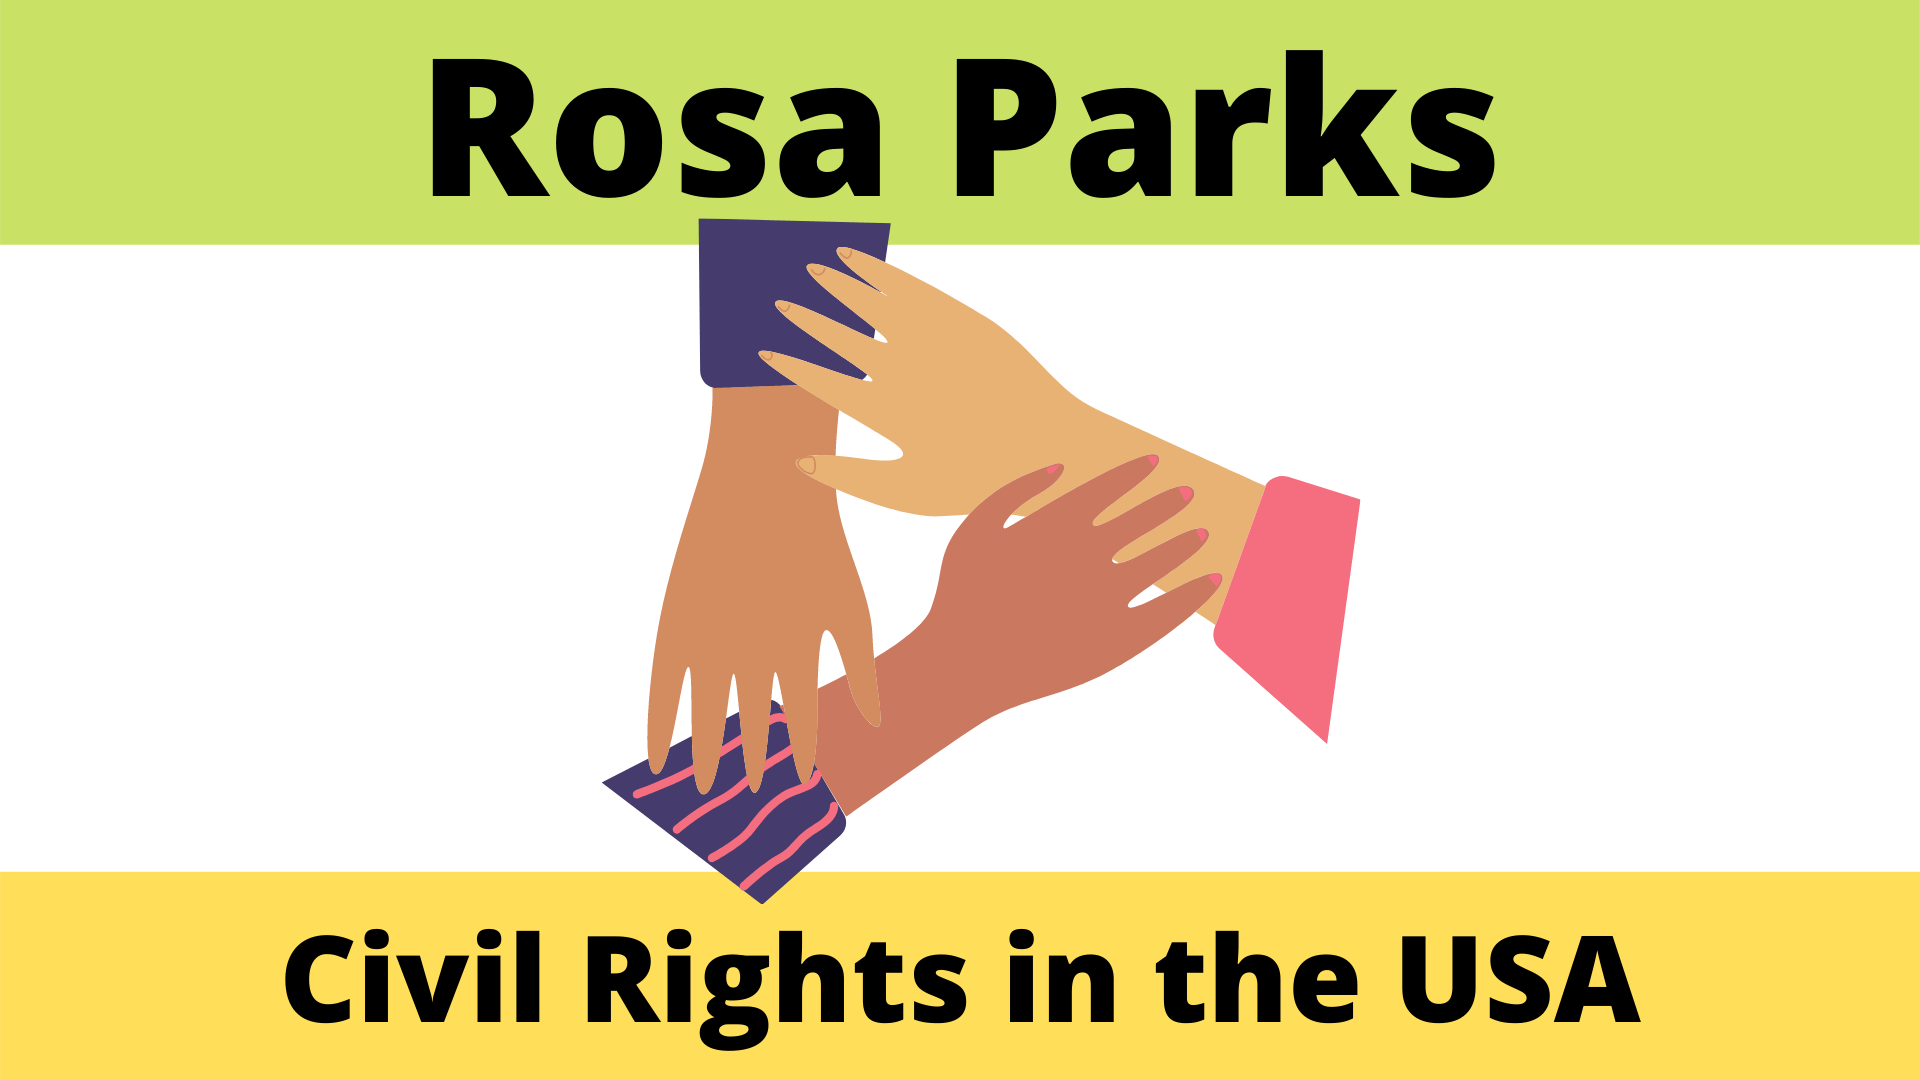 Rosa Parks Inquiry Based Lesson Lesson Plan Amp Student